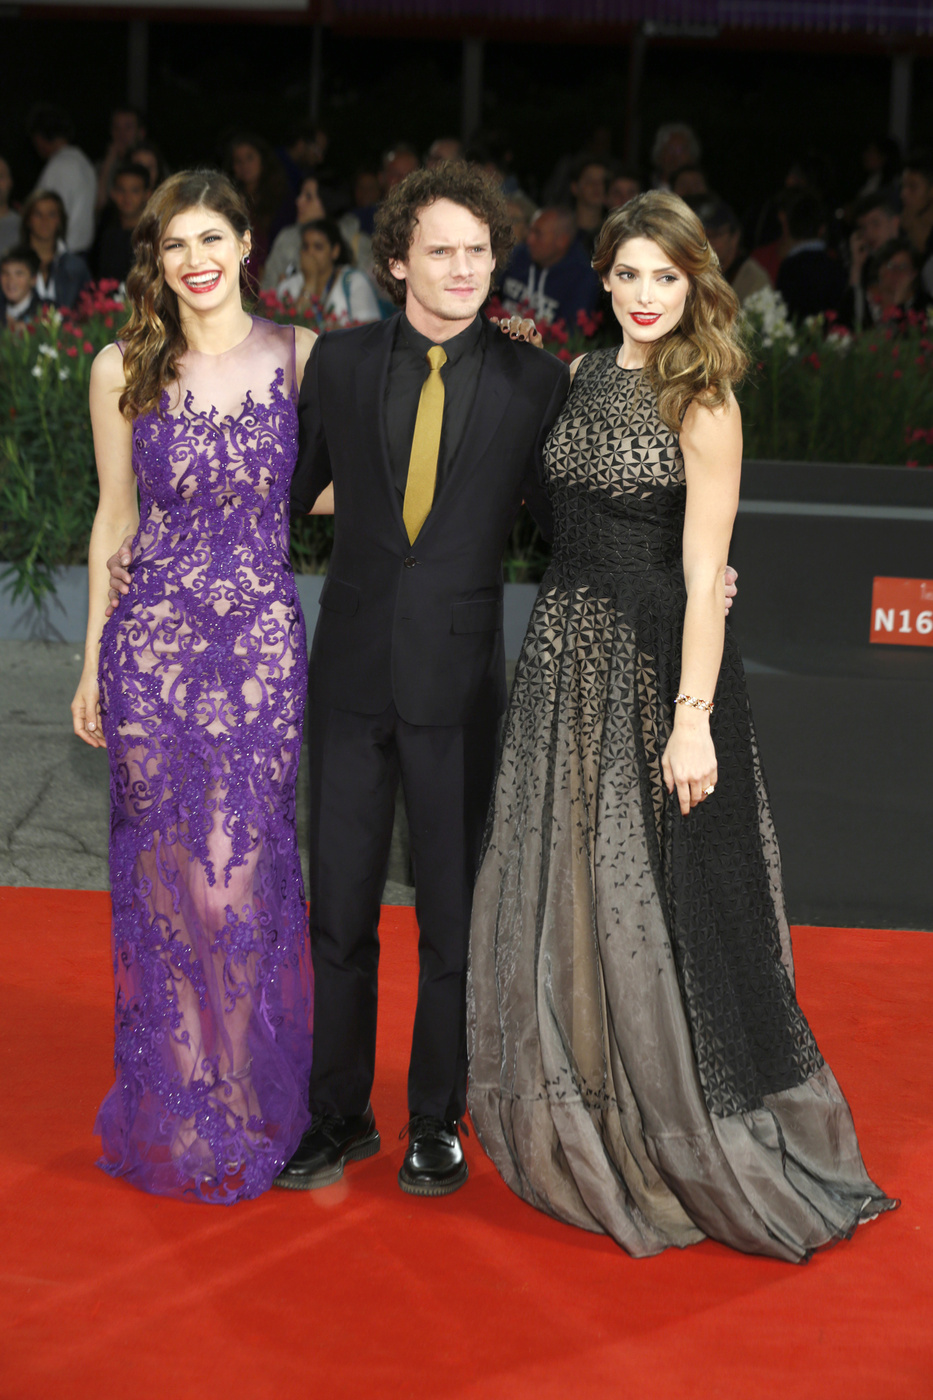 Venice Film Festival Fug Carpet: Alexandra Daddario and Ashley Greene